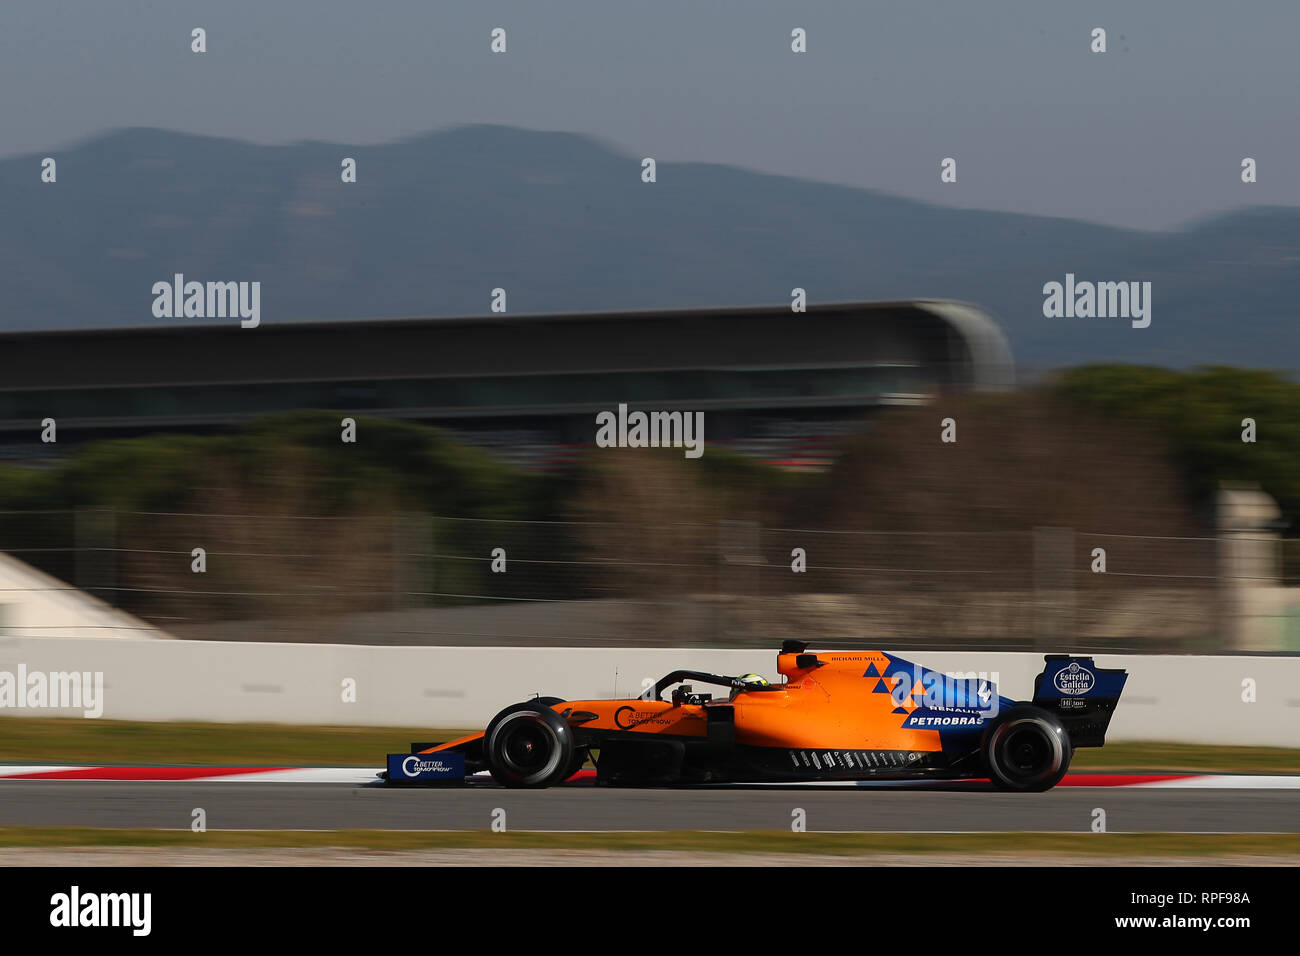 montmelo, spain. 21st feb, 2019. lando norris of great britain